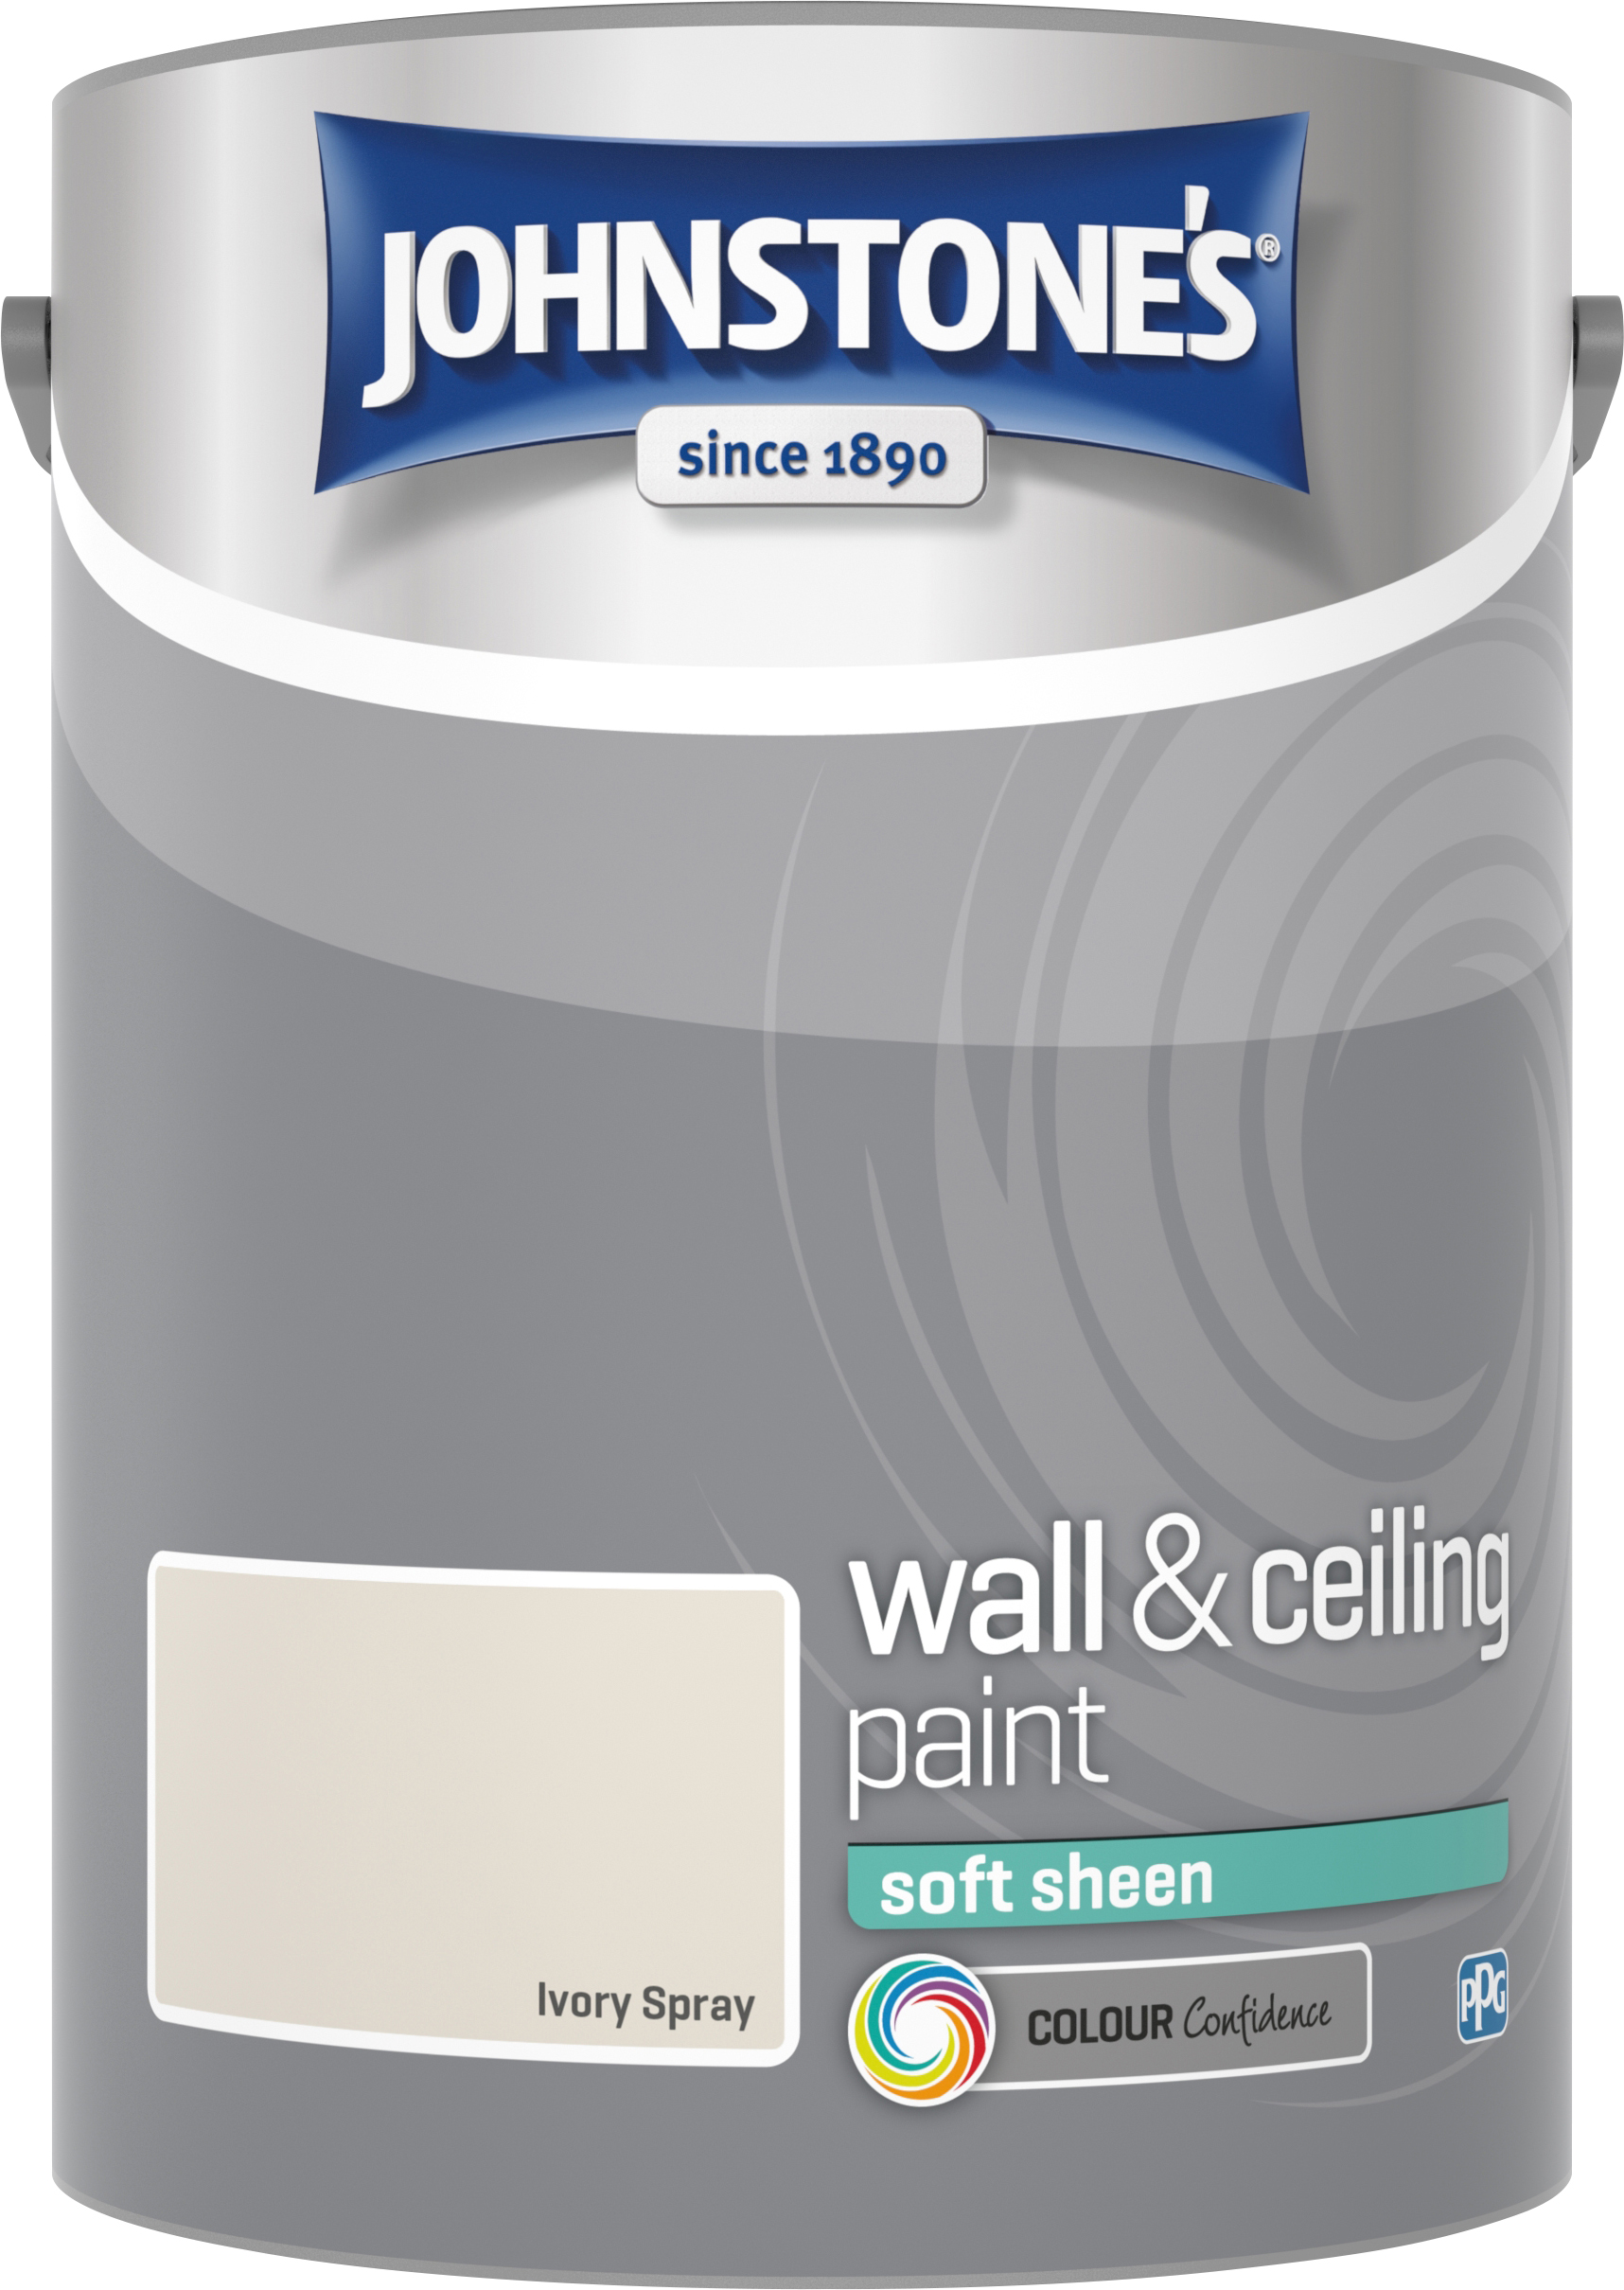 Johnstone's 304282 5 Litre Soft Sheen Emulsion Paint - Ivory Spray